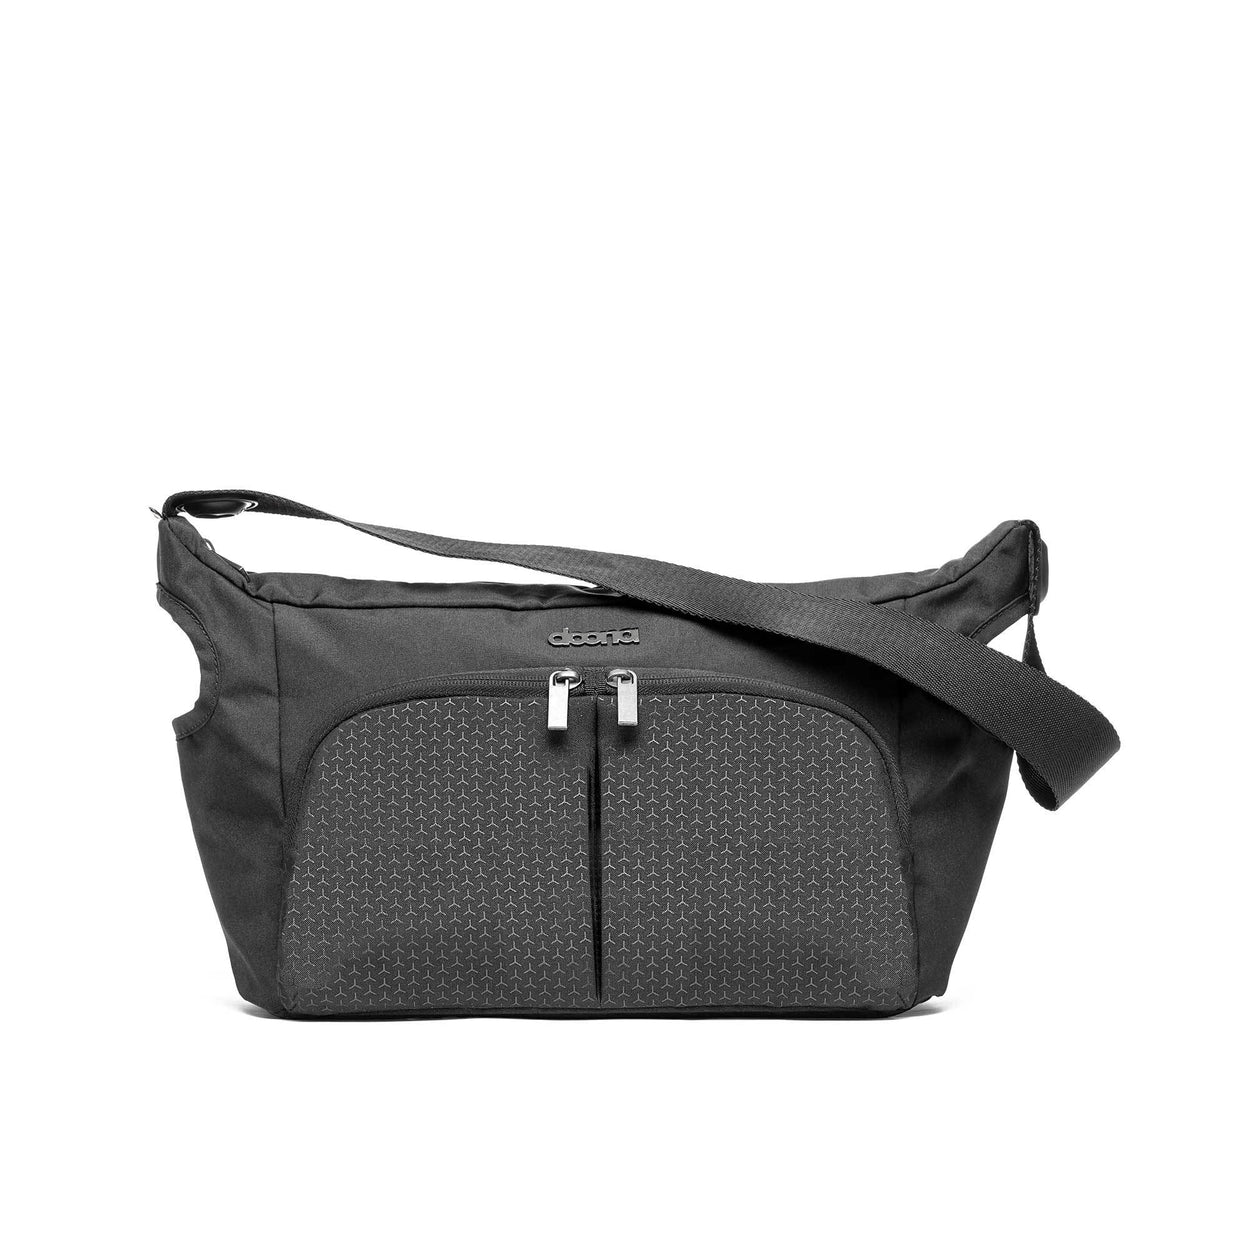 doona essentials bag new collection nitro black